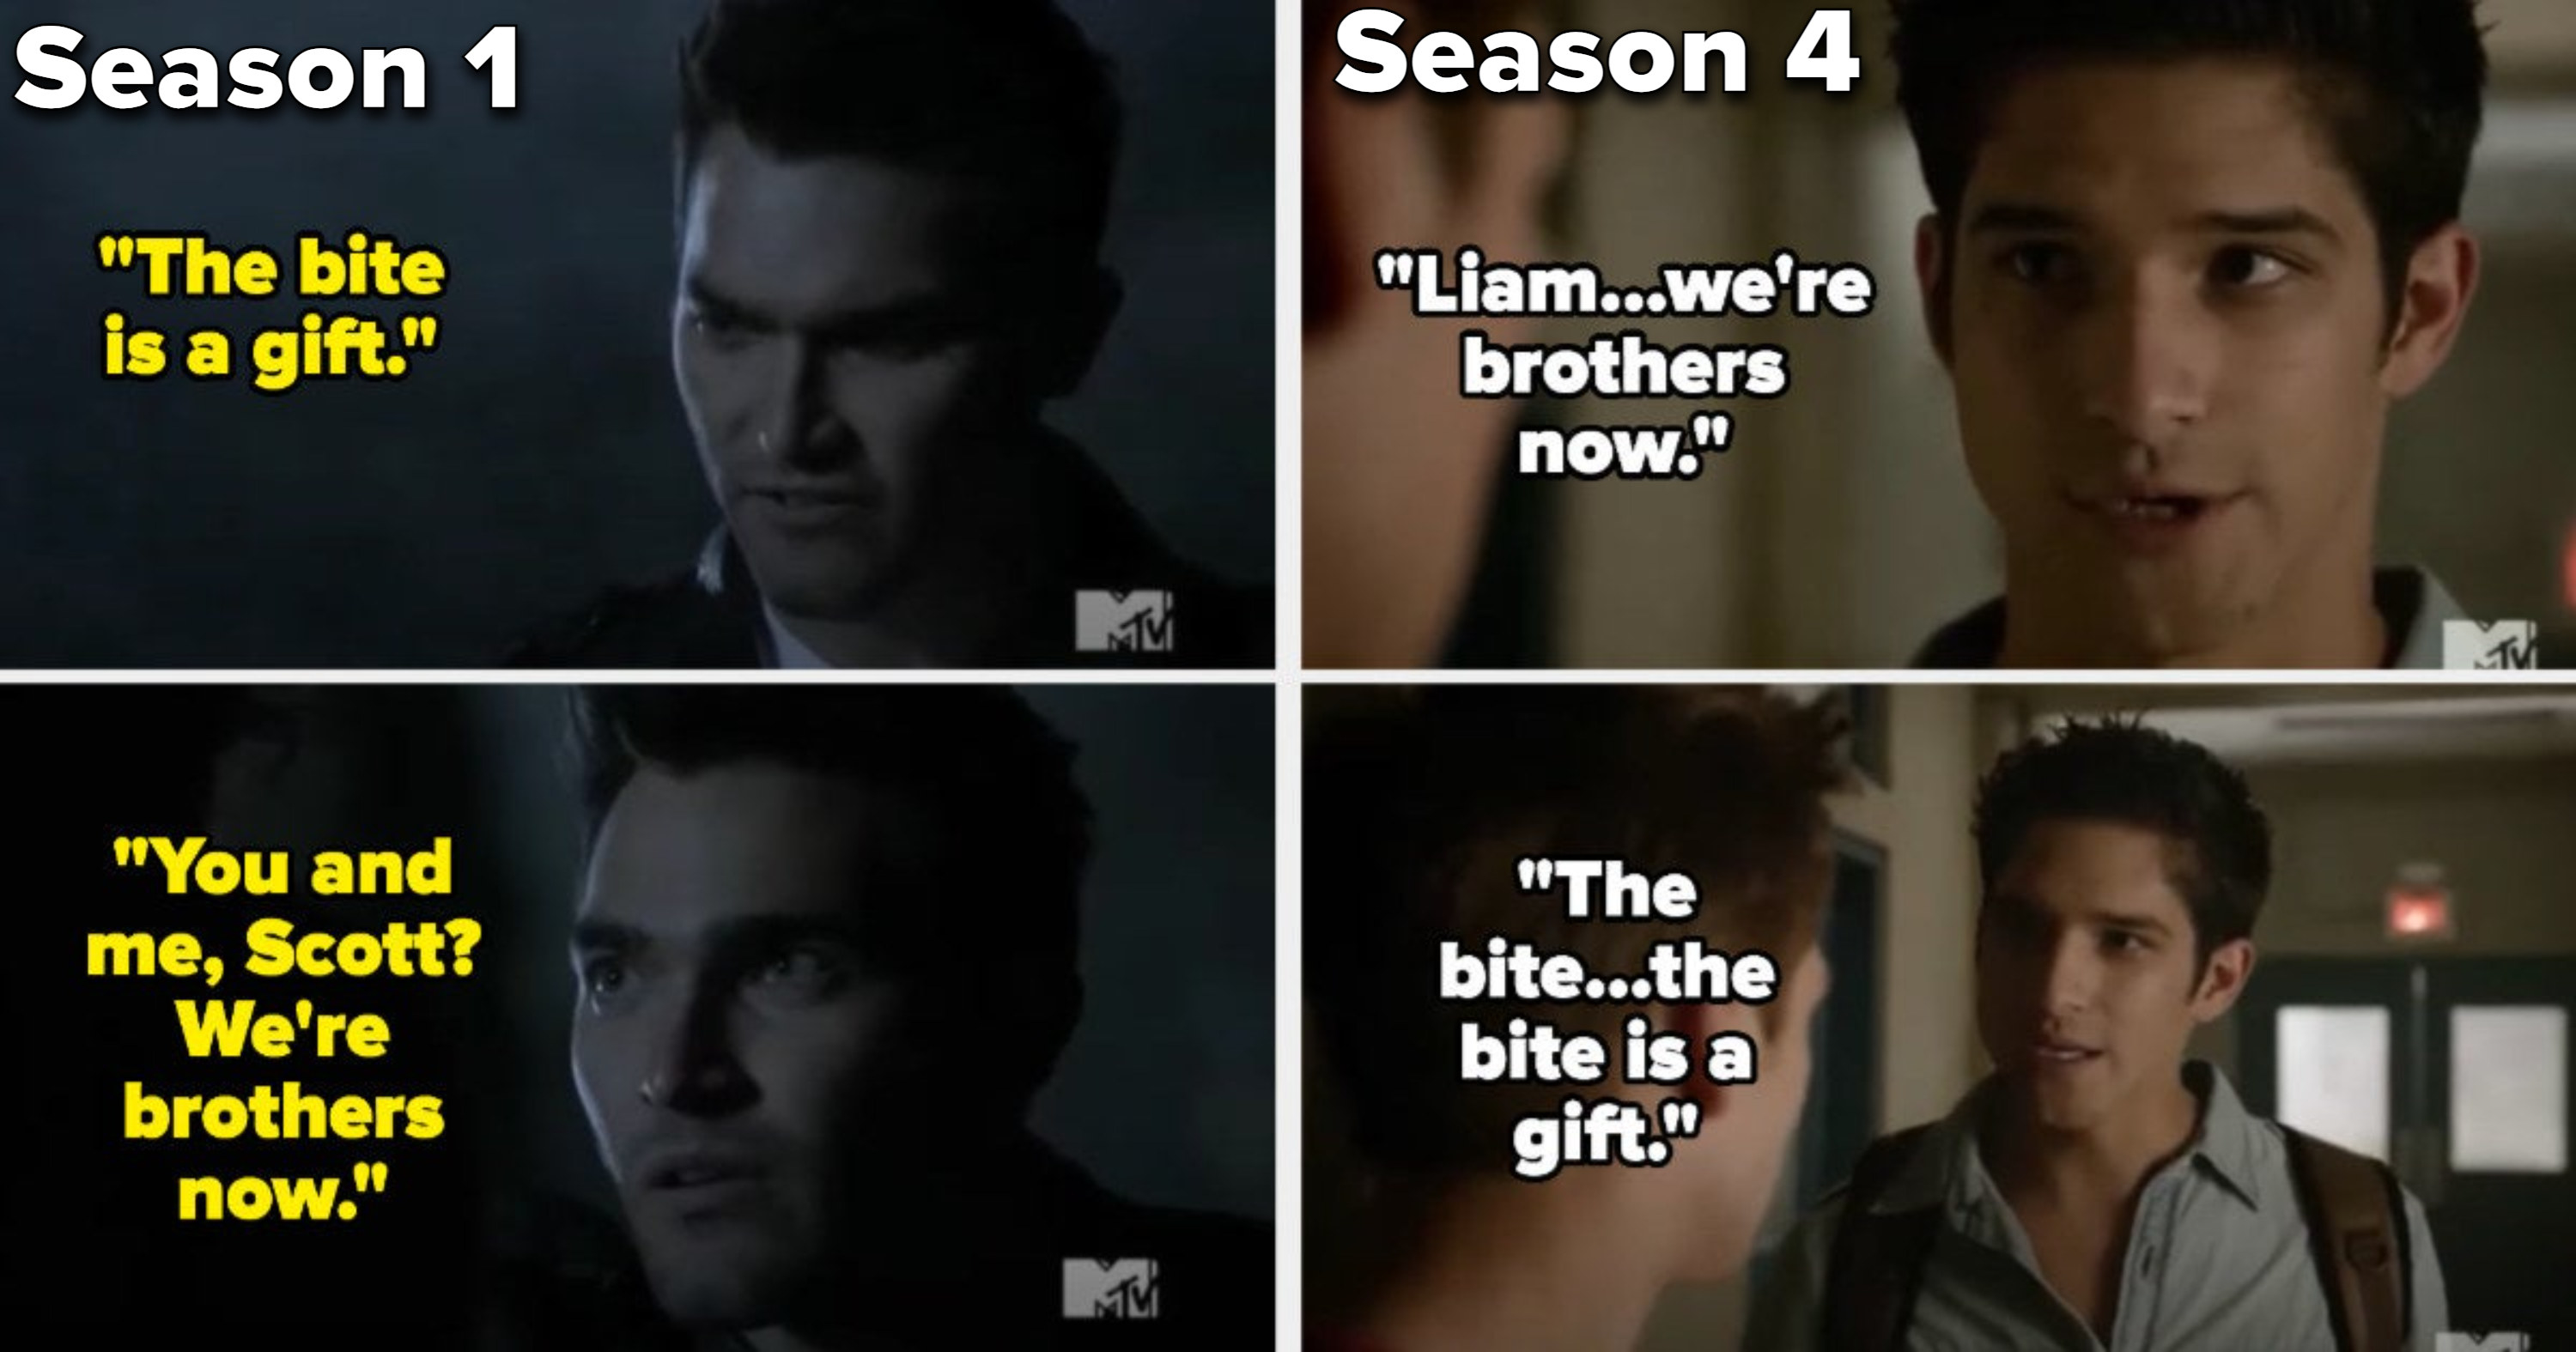 """In Season 1, Derek tells Scott """"the bite is a gift"""" and that they're brothers now, and Scott says the same thing to Liam in Season 4"""